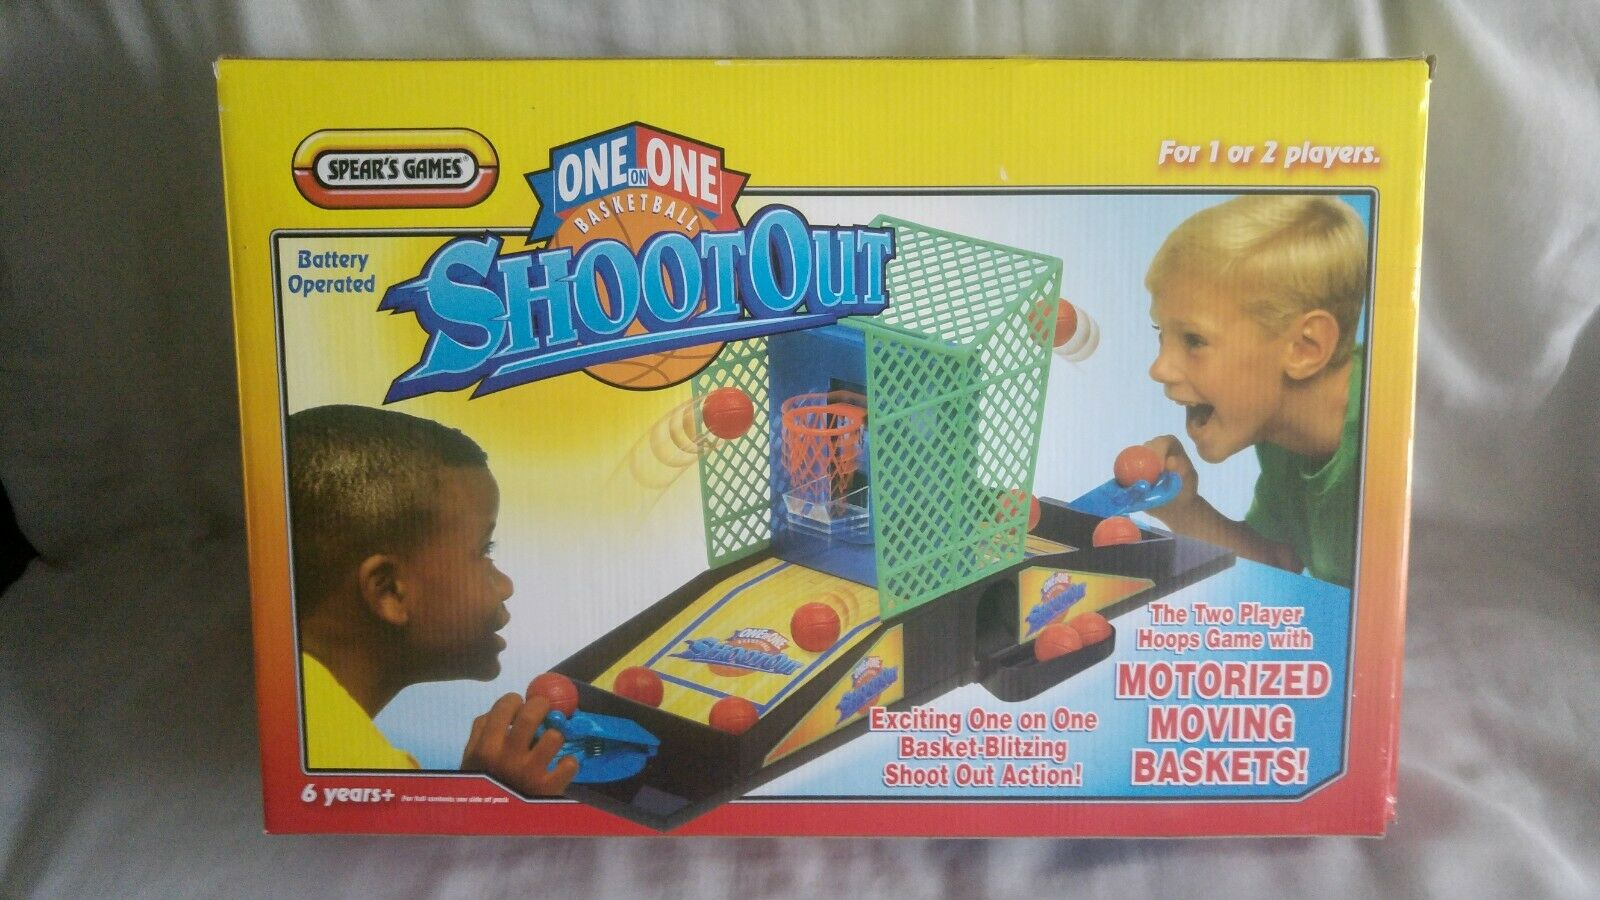 2 Players 1-on-1 Basketball Shootout Game System